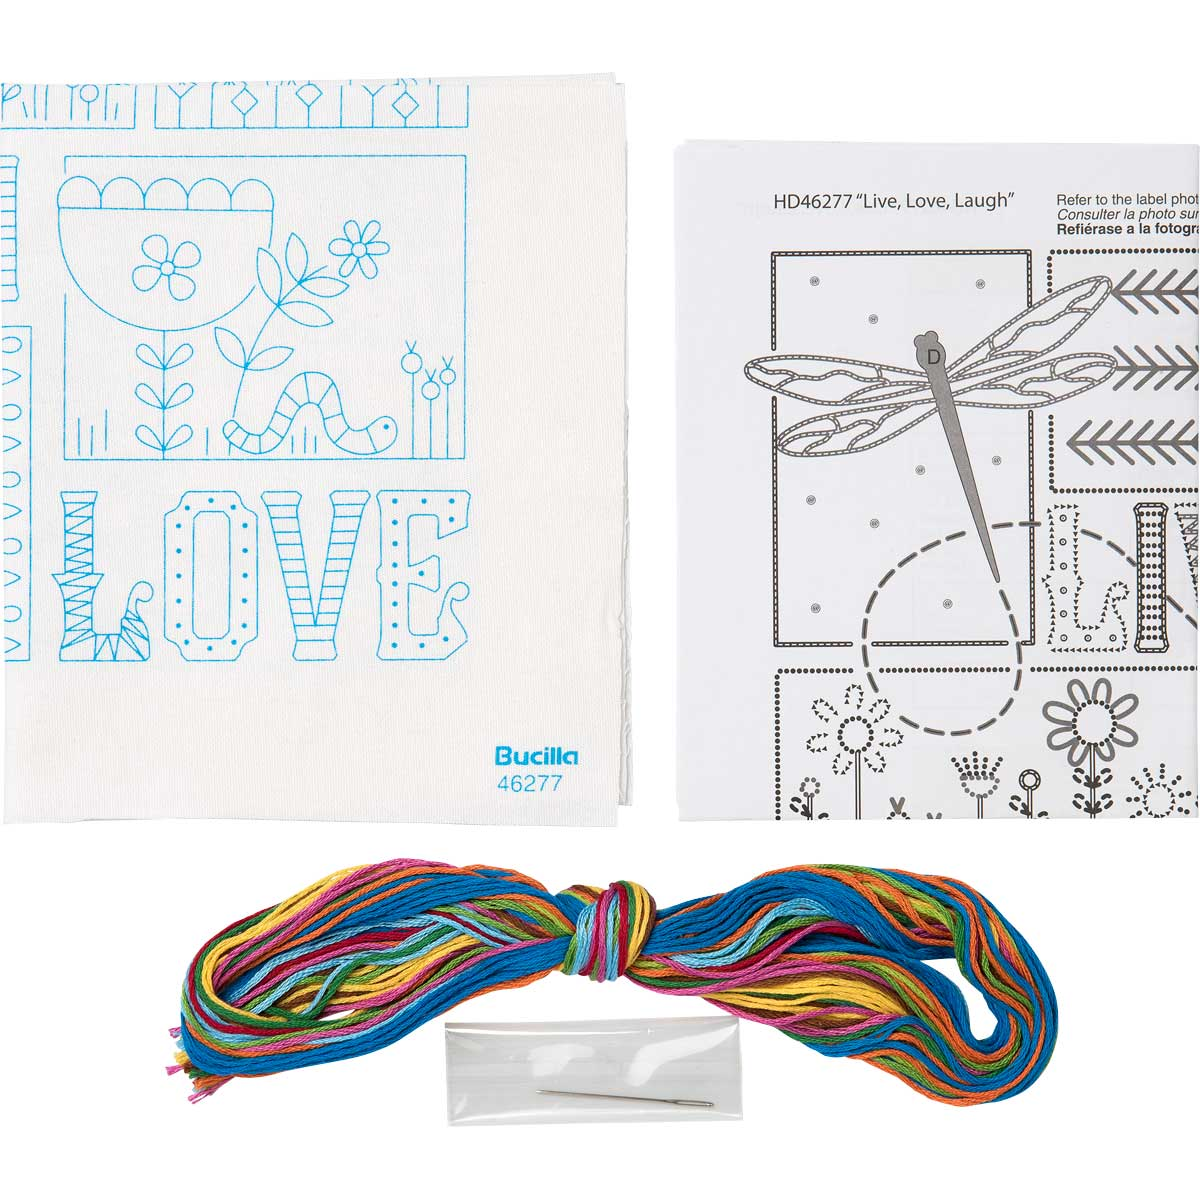 Bucilla ® Stamped Embroidery - Picture Kits - Live, Love, Laugh - WM46277E